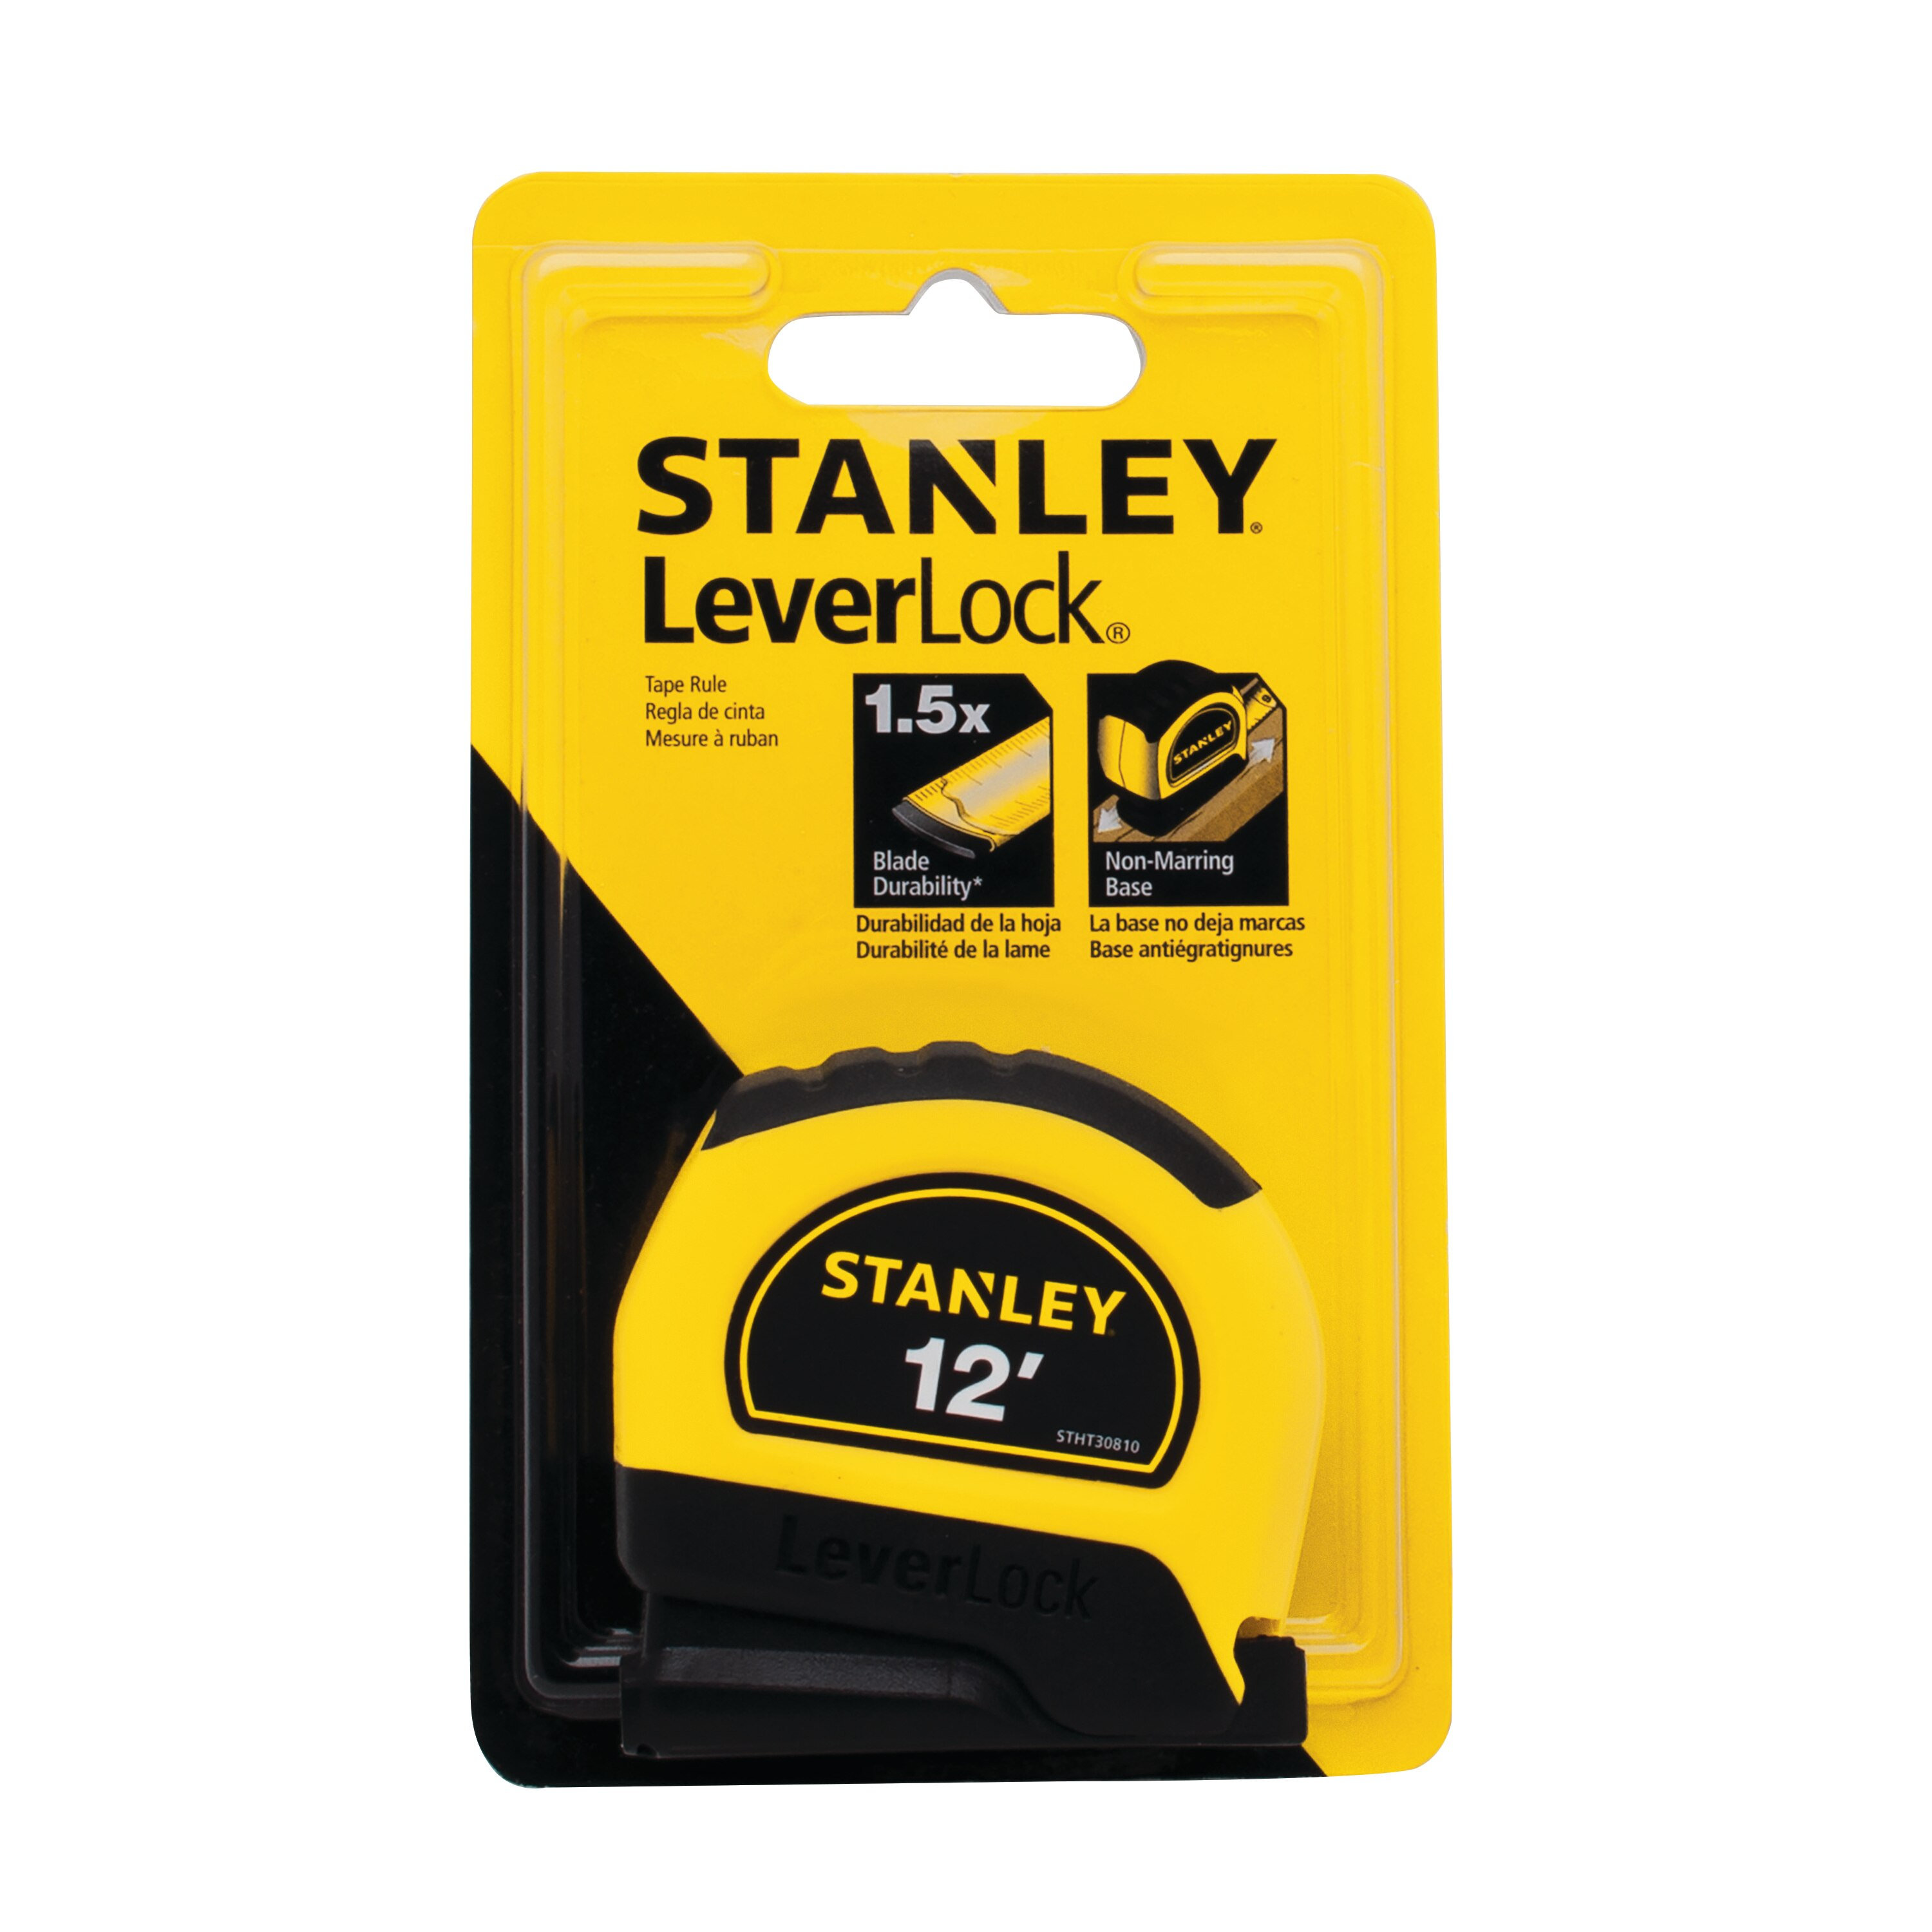 Stanley Tools - 12 ft LEVERLOCK Tape Measure - STHT30810